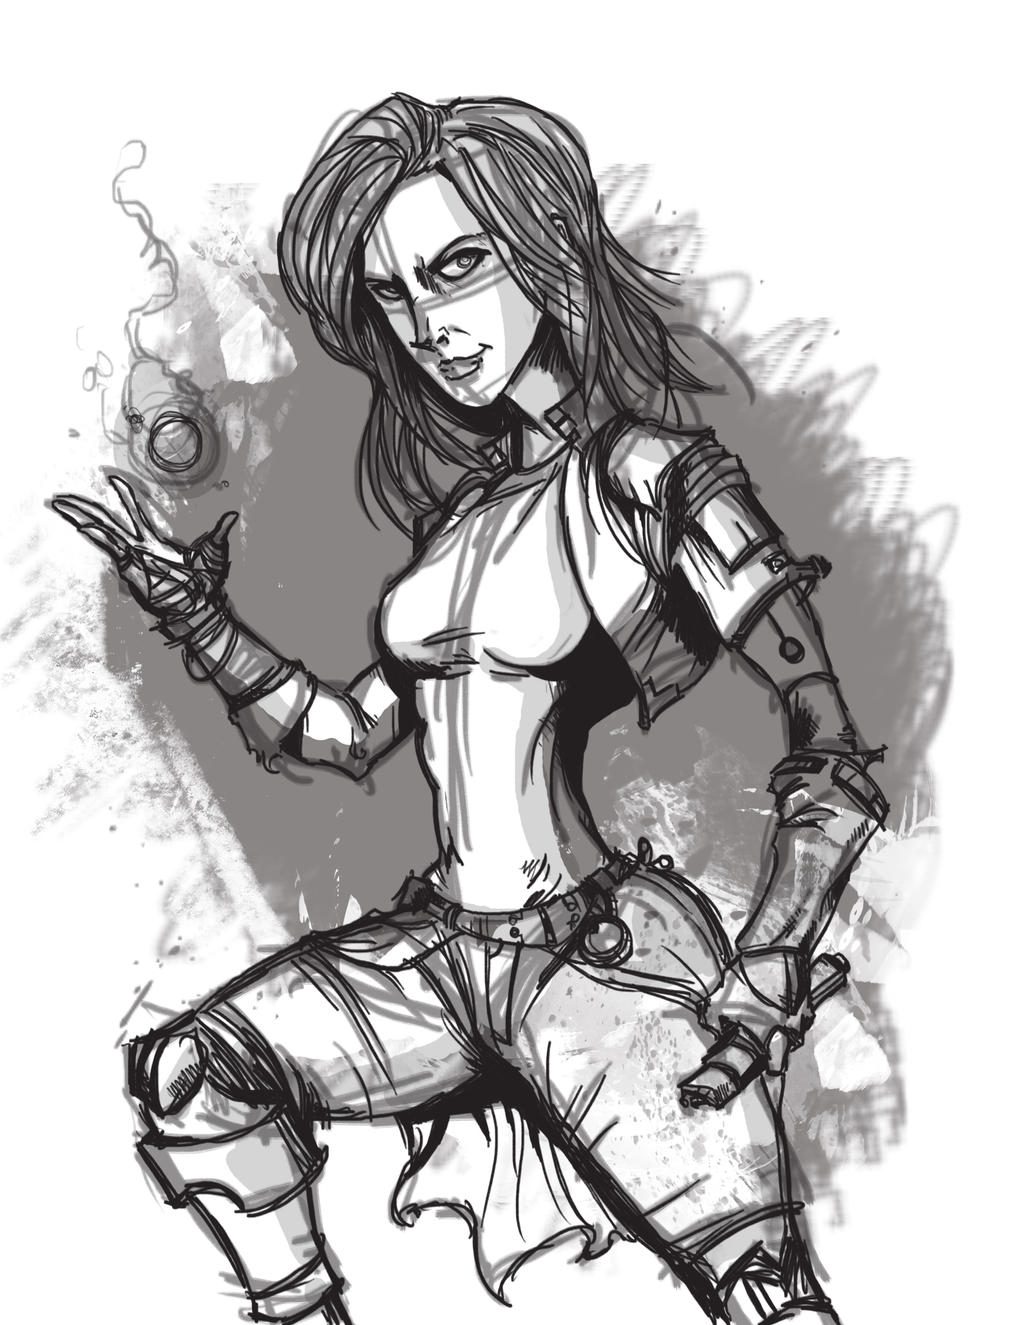 Satkia-sketch by SteveDave81